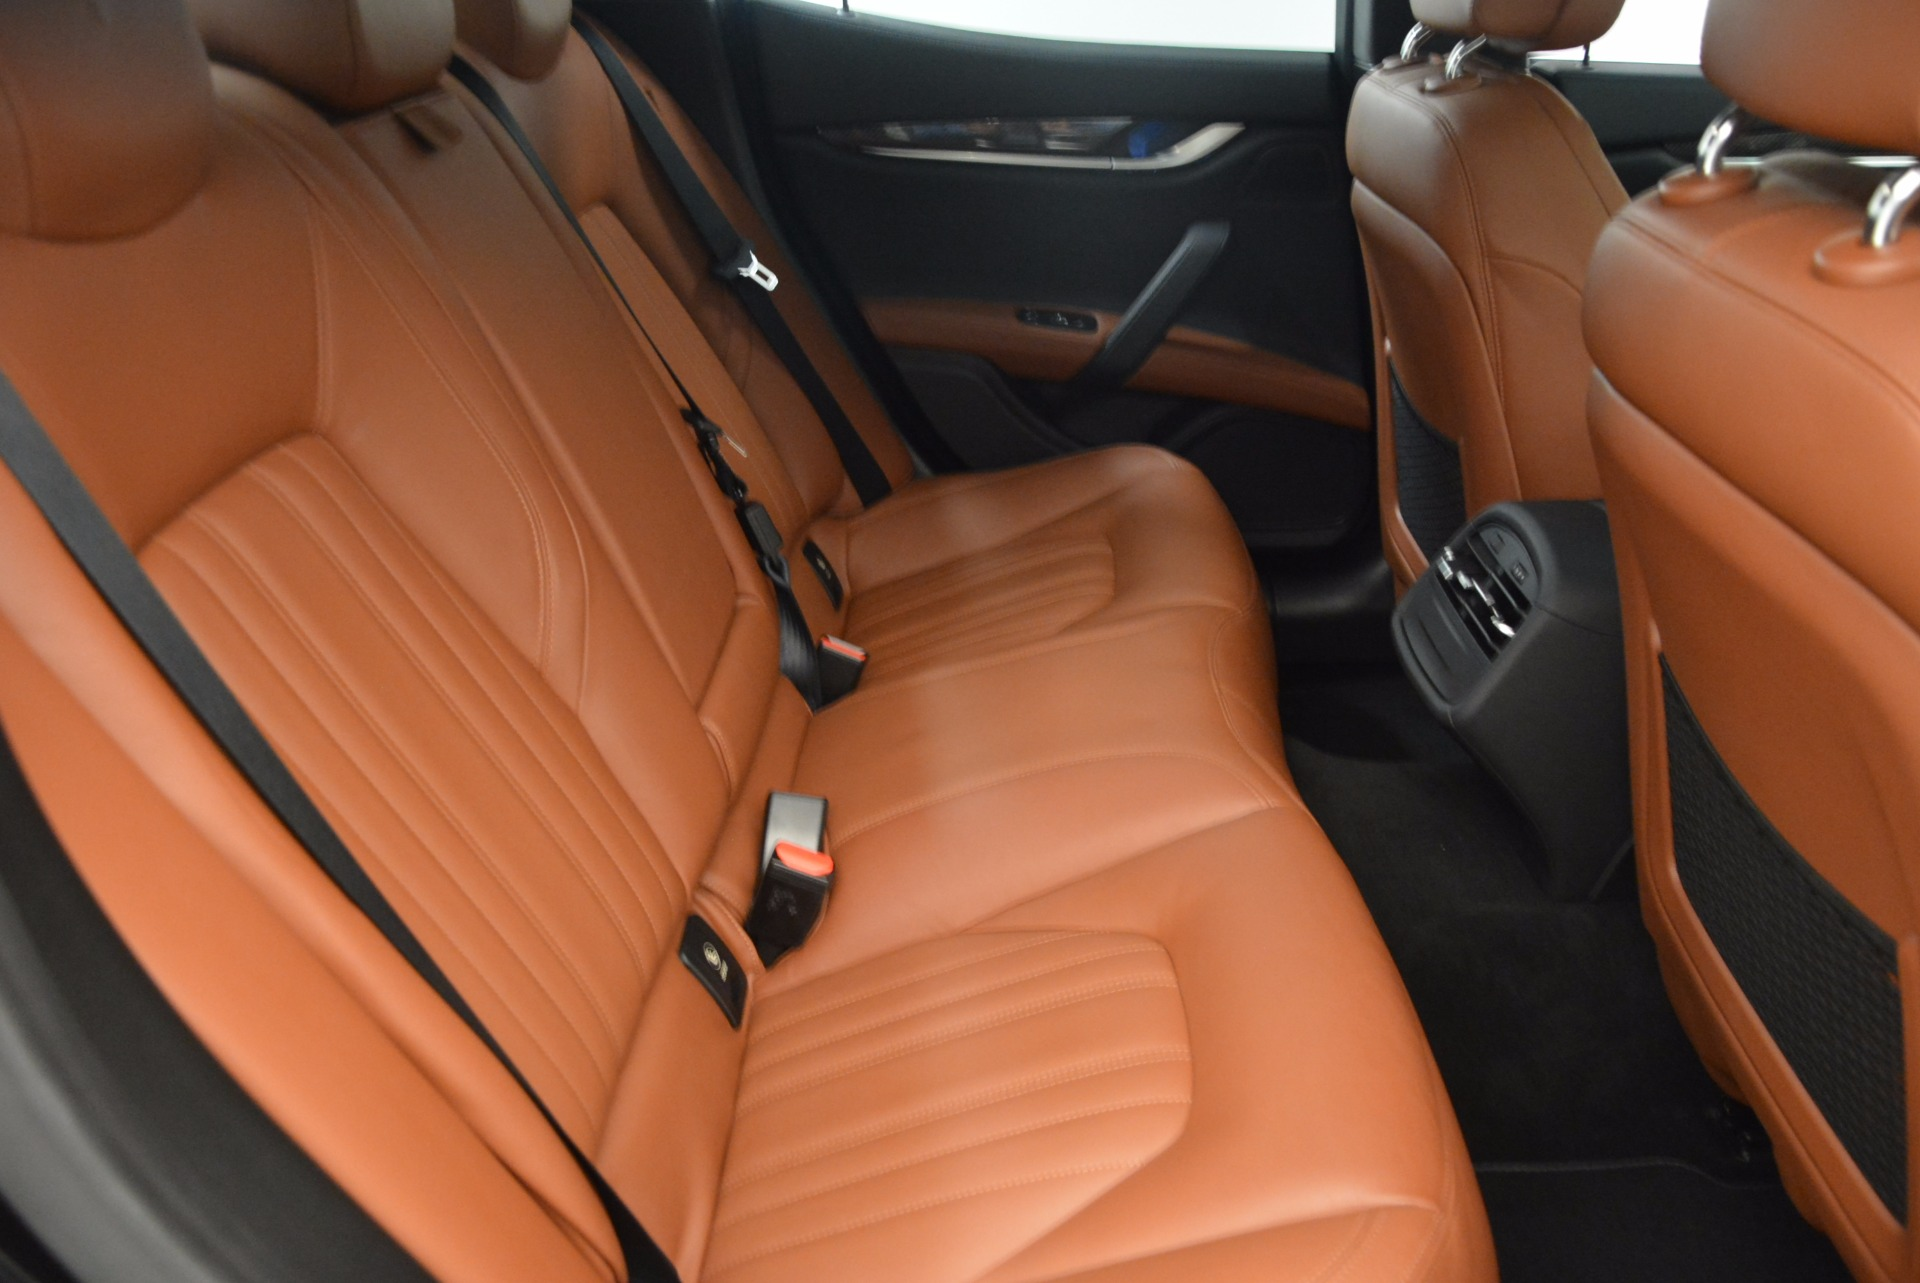 Used 2014 Maserati Ghibli S Q4 For Sale In Greenwich, CT. Alfa Romeo of Greenwich, 7281 1587_p21